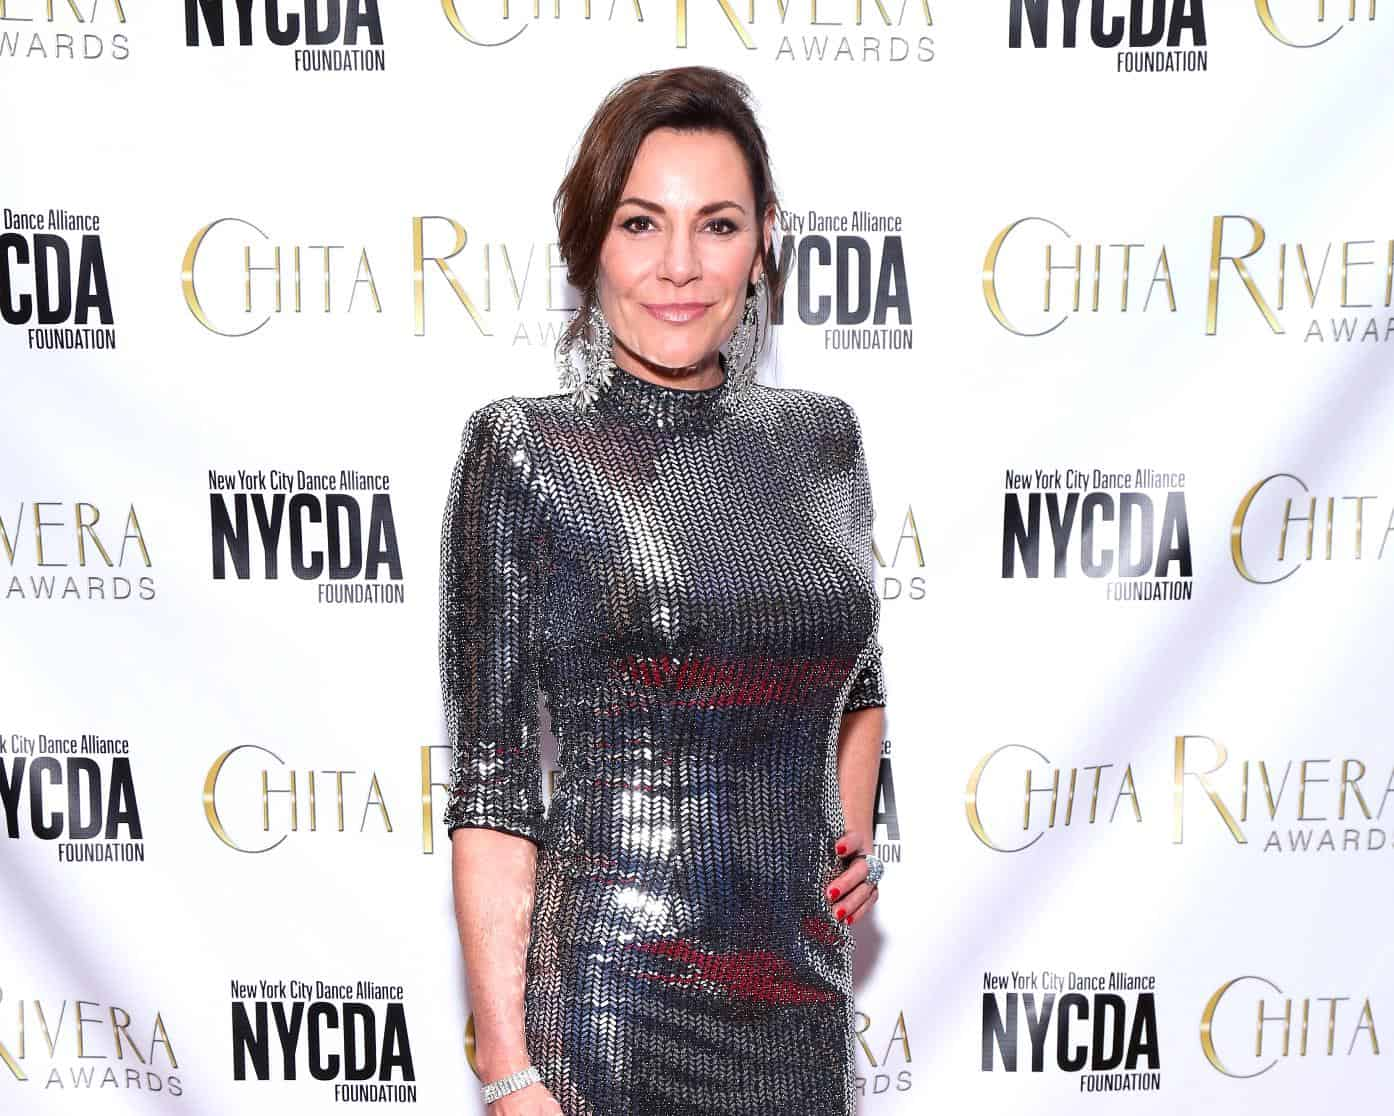 EXCLUSIVE: Luann de Lesseps Reveals If She's Returning to RHONY, Plus She Dishes on the Reunion and Upcoming Performance on WWHL